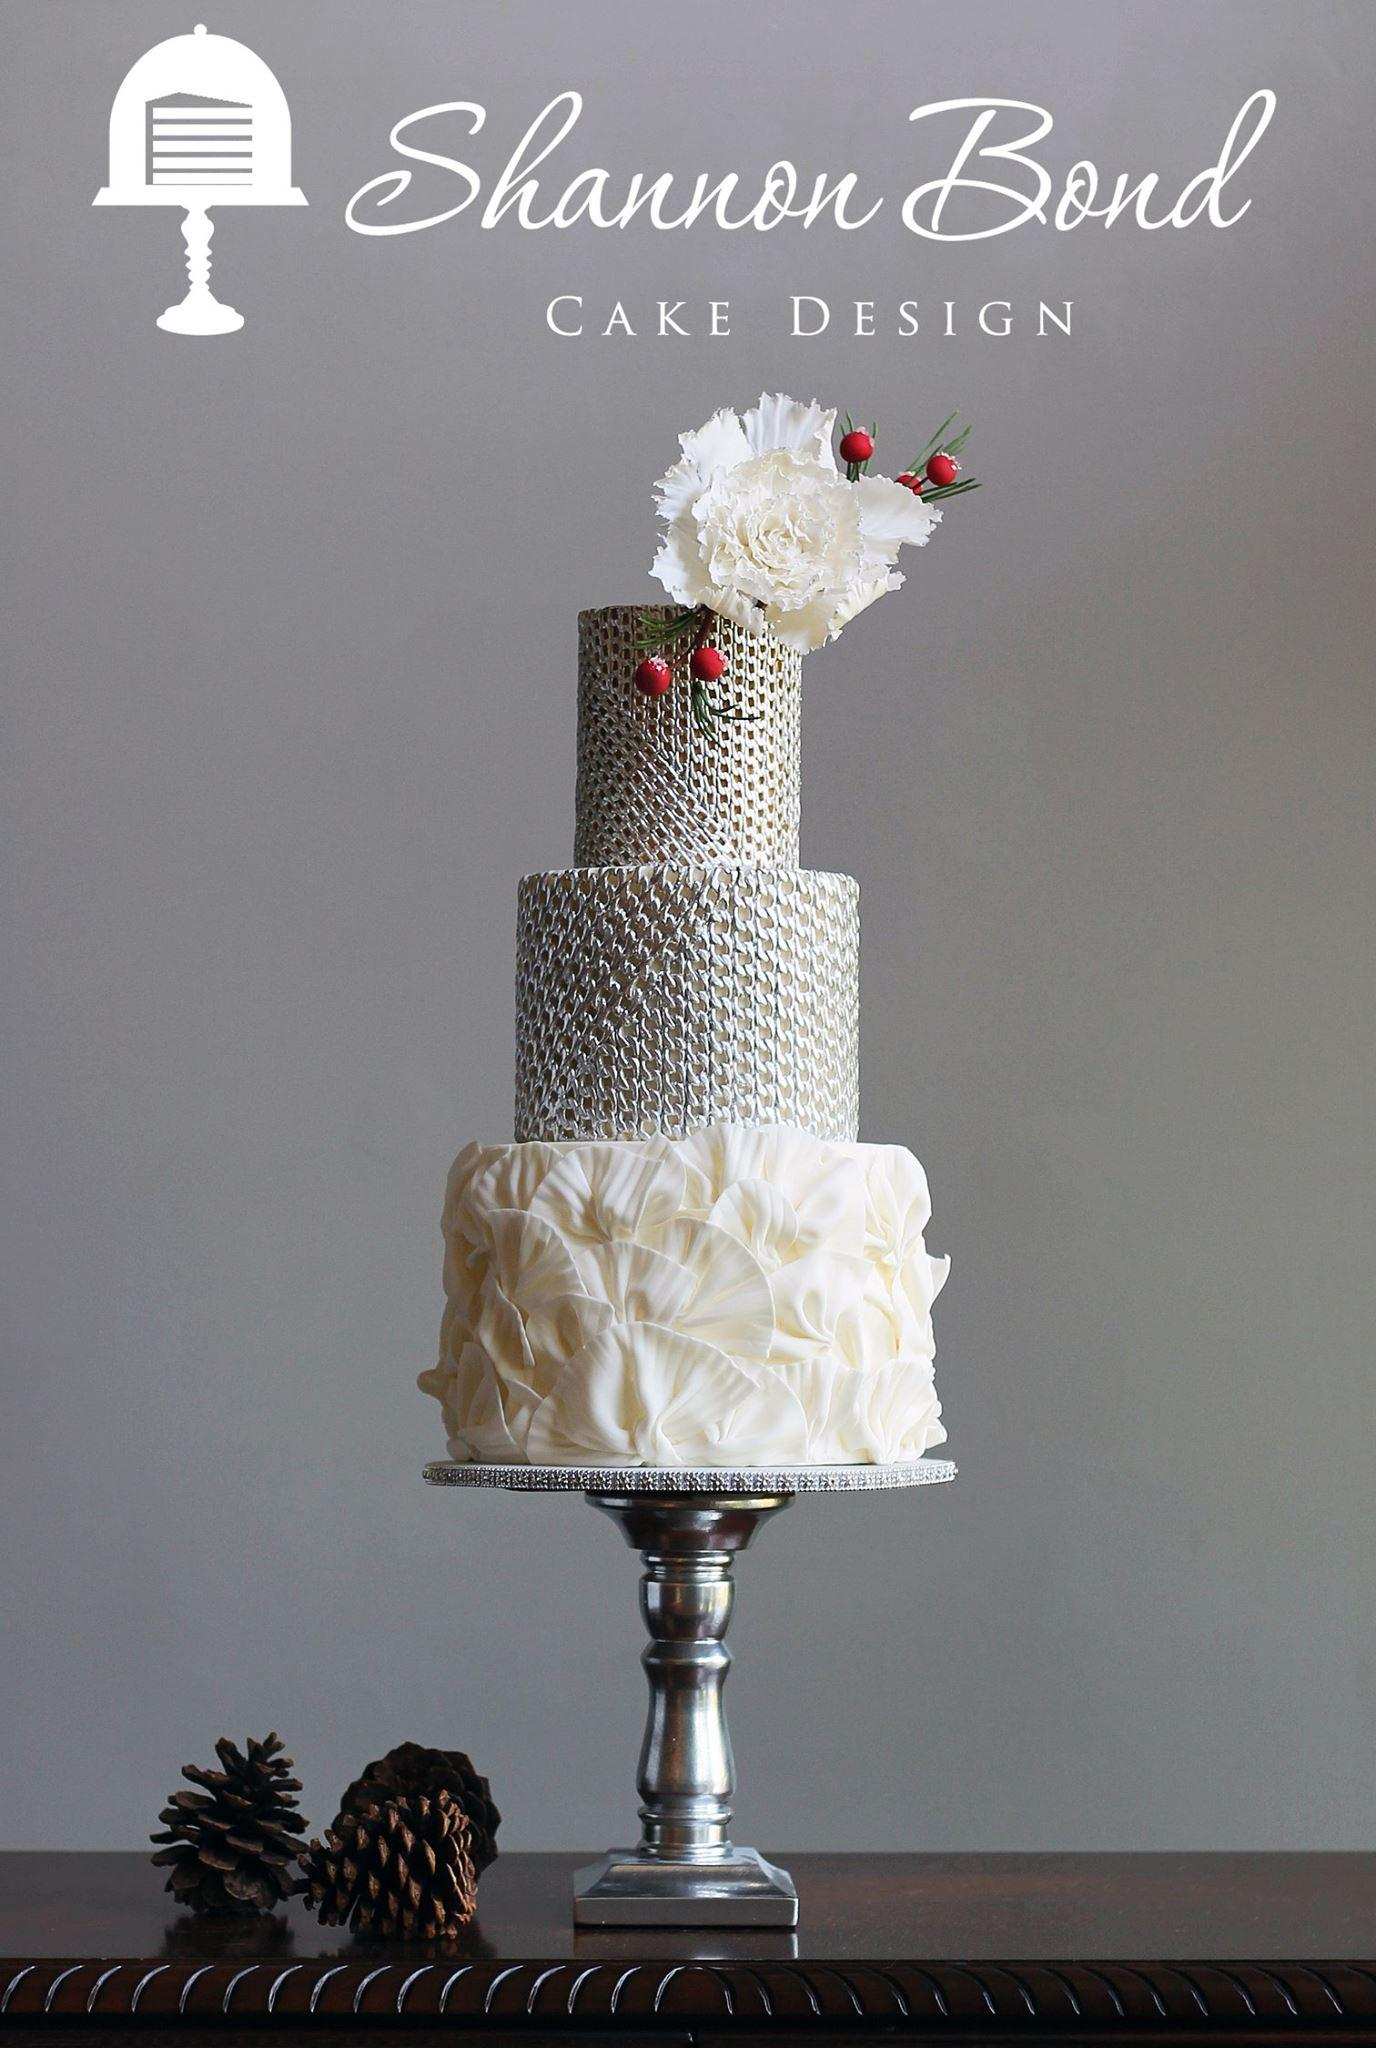 Silver sparkle and white winter wedding cake with ruffles